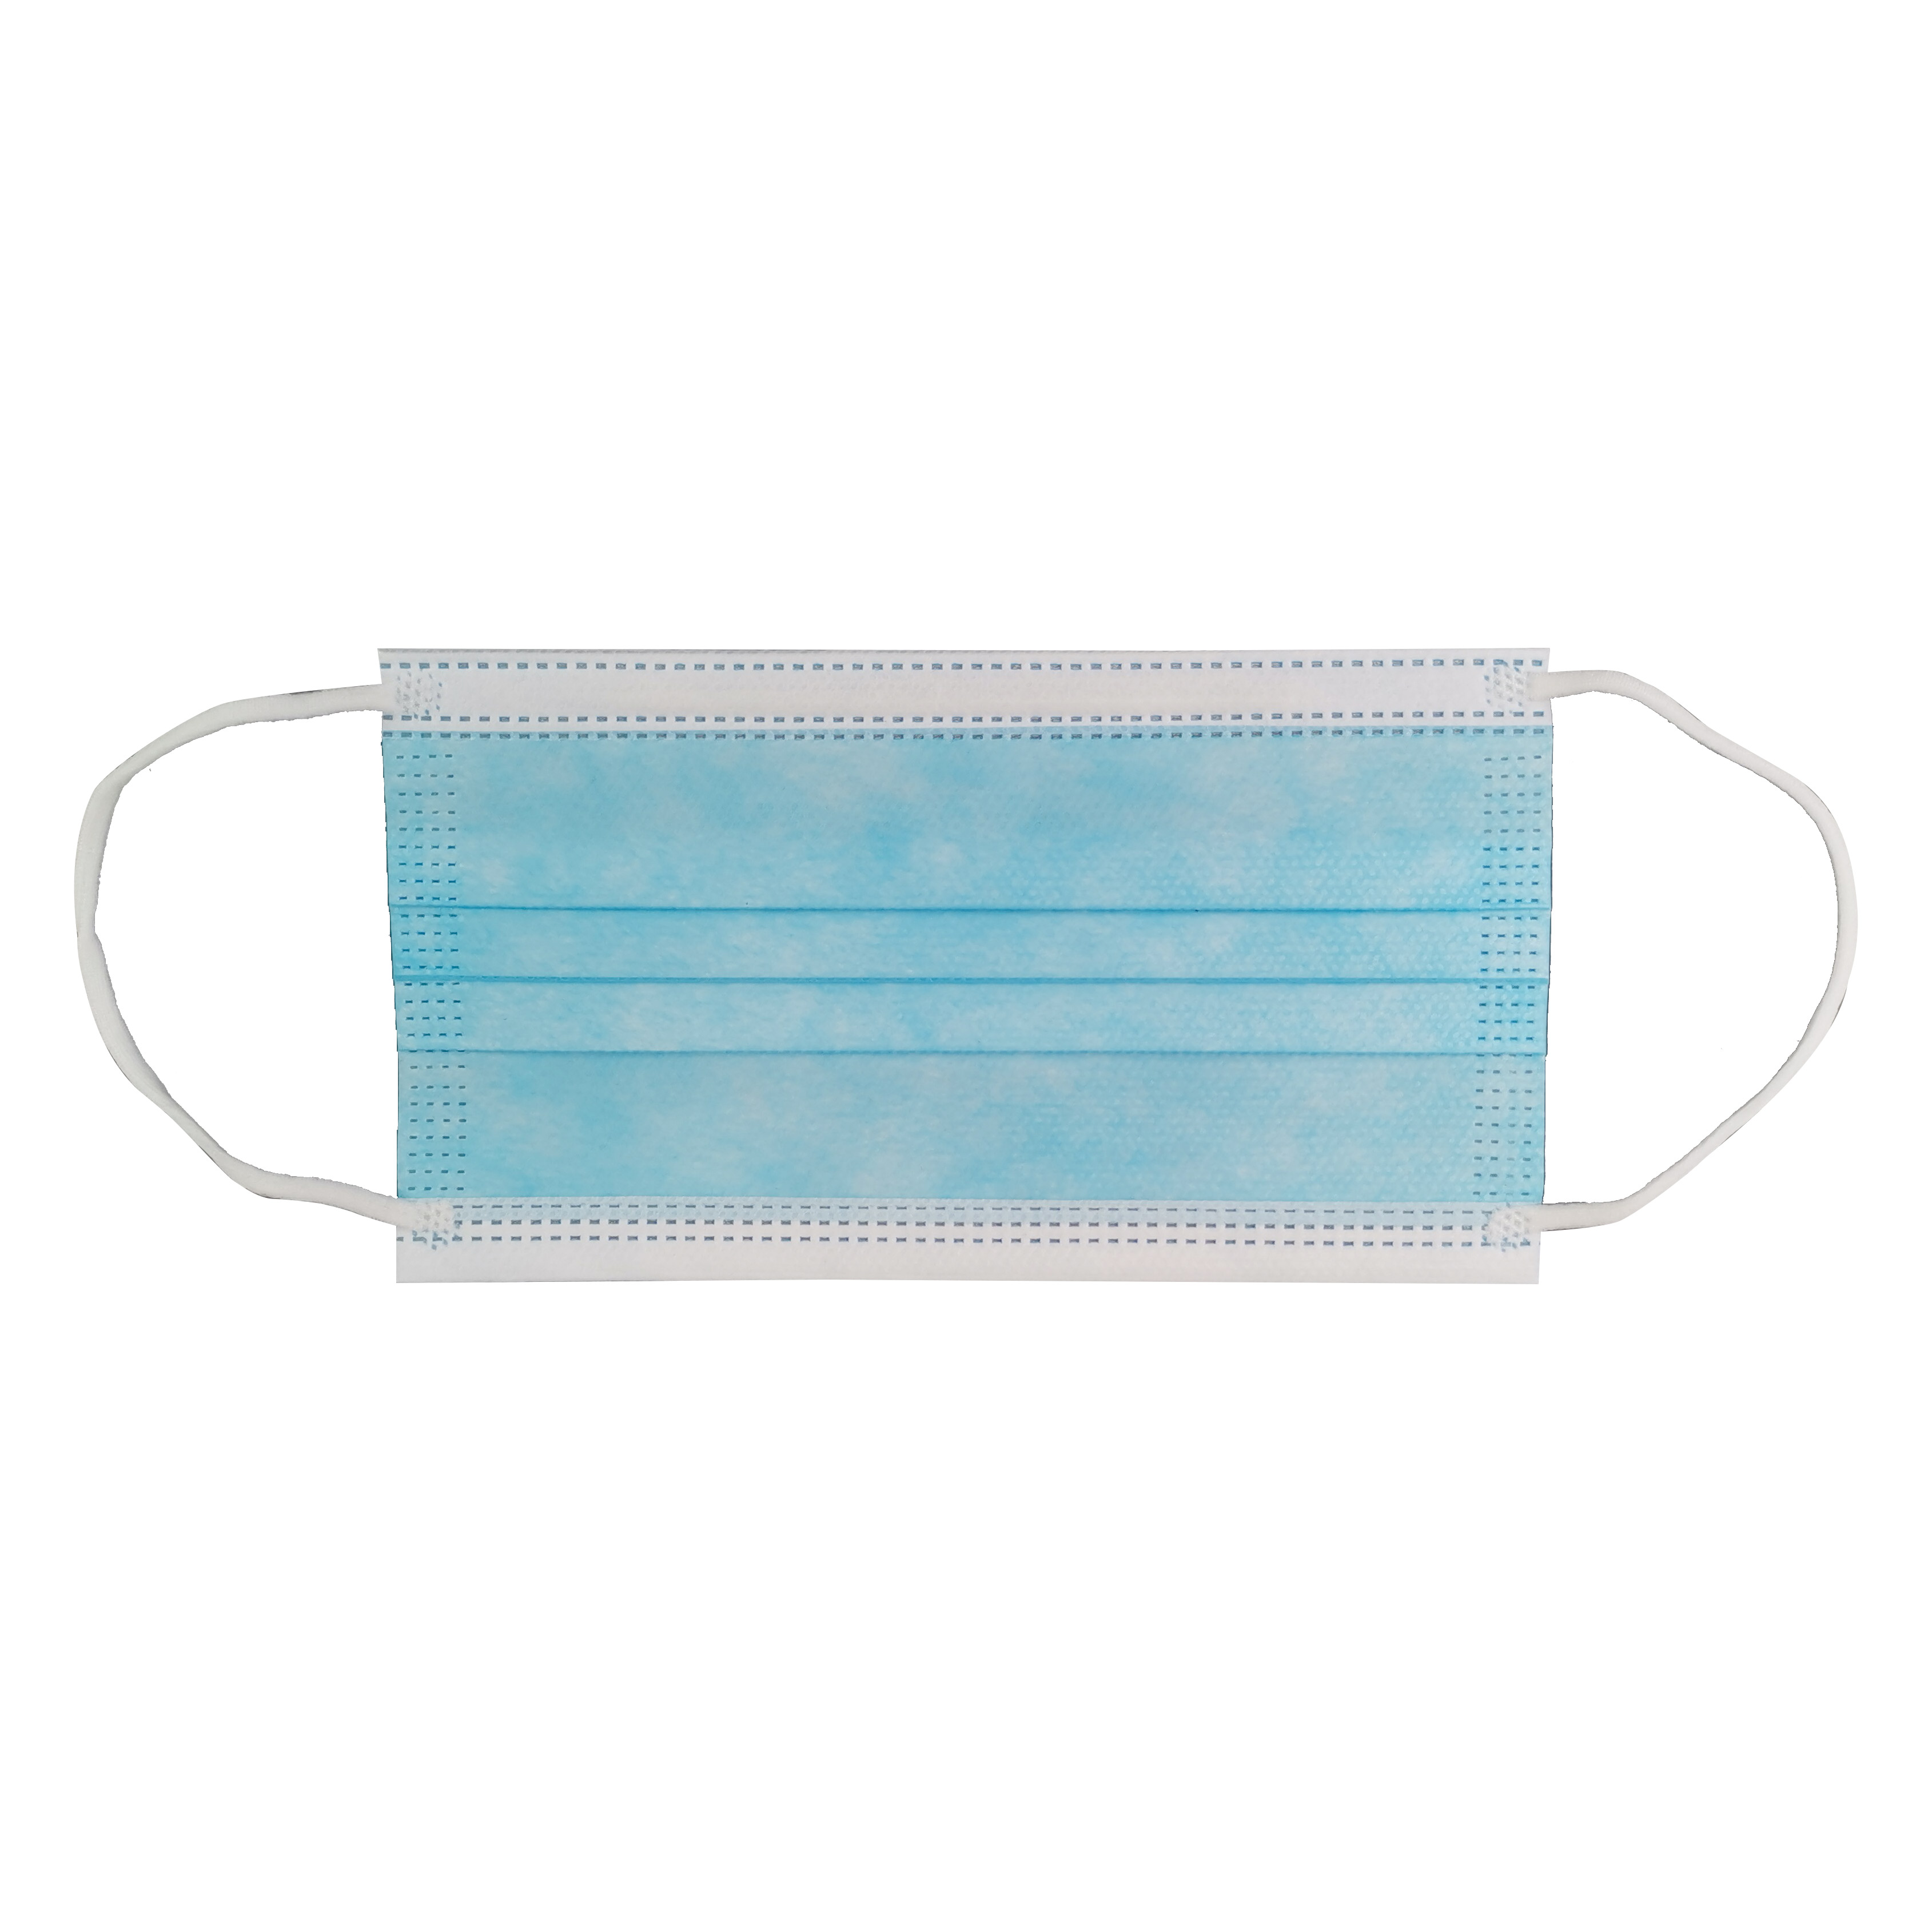 Factory Directly non disposable carbon surgical mask earloop